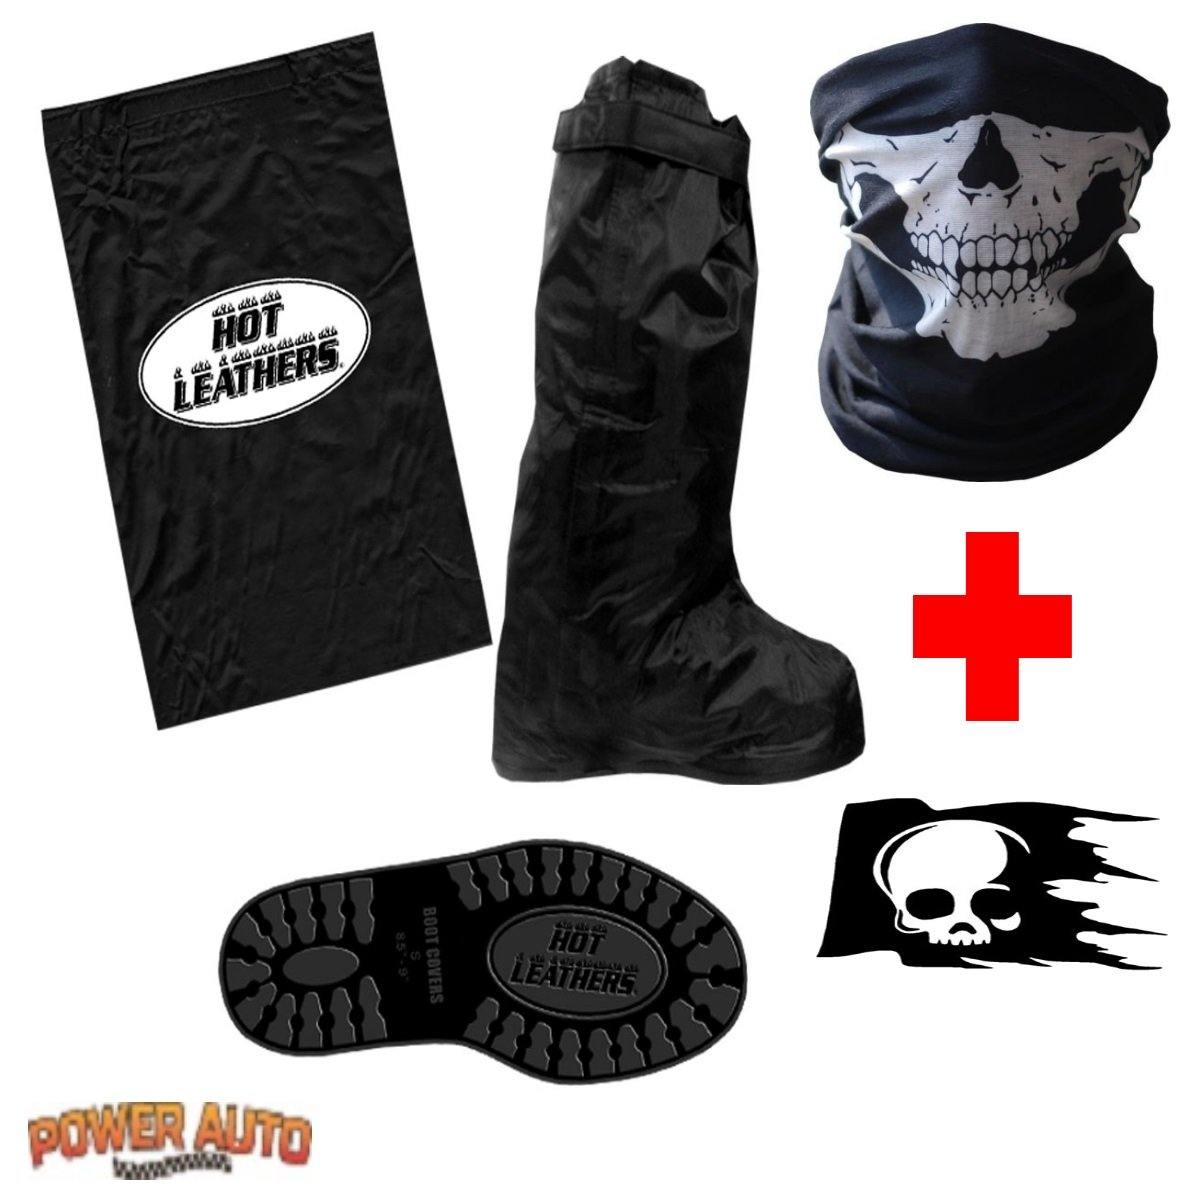 Motorcycle Boot Covers - Outdoor Protective Riding Rain Suit Gear Waterproof Weatherproof - Full Shoe Slip Over - Rainstorm Rainy Days Plus Skull Decal & Skeleton Riding Face Mask (2X) Power Auto